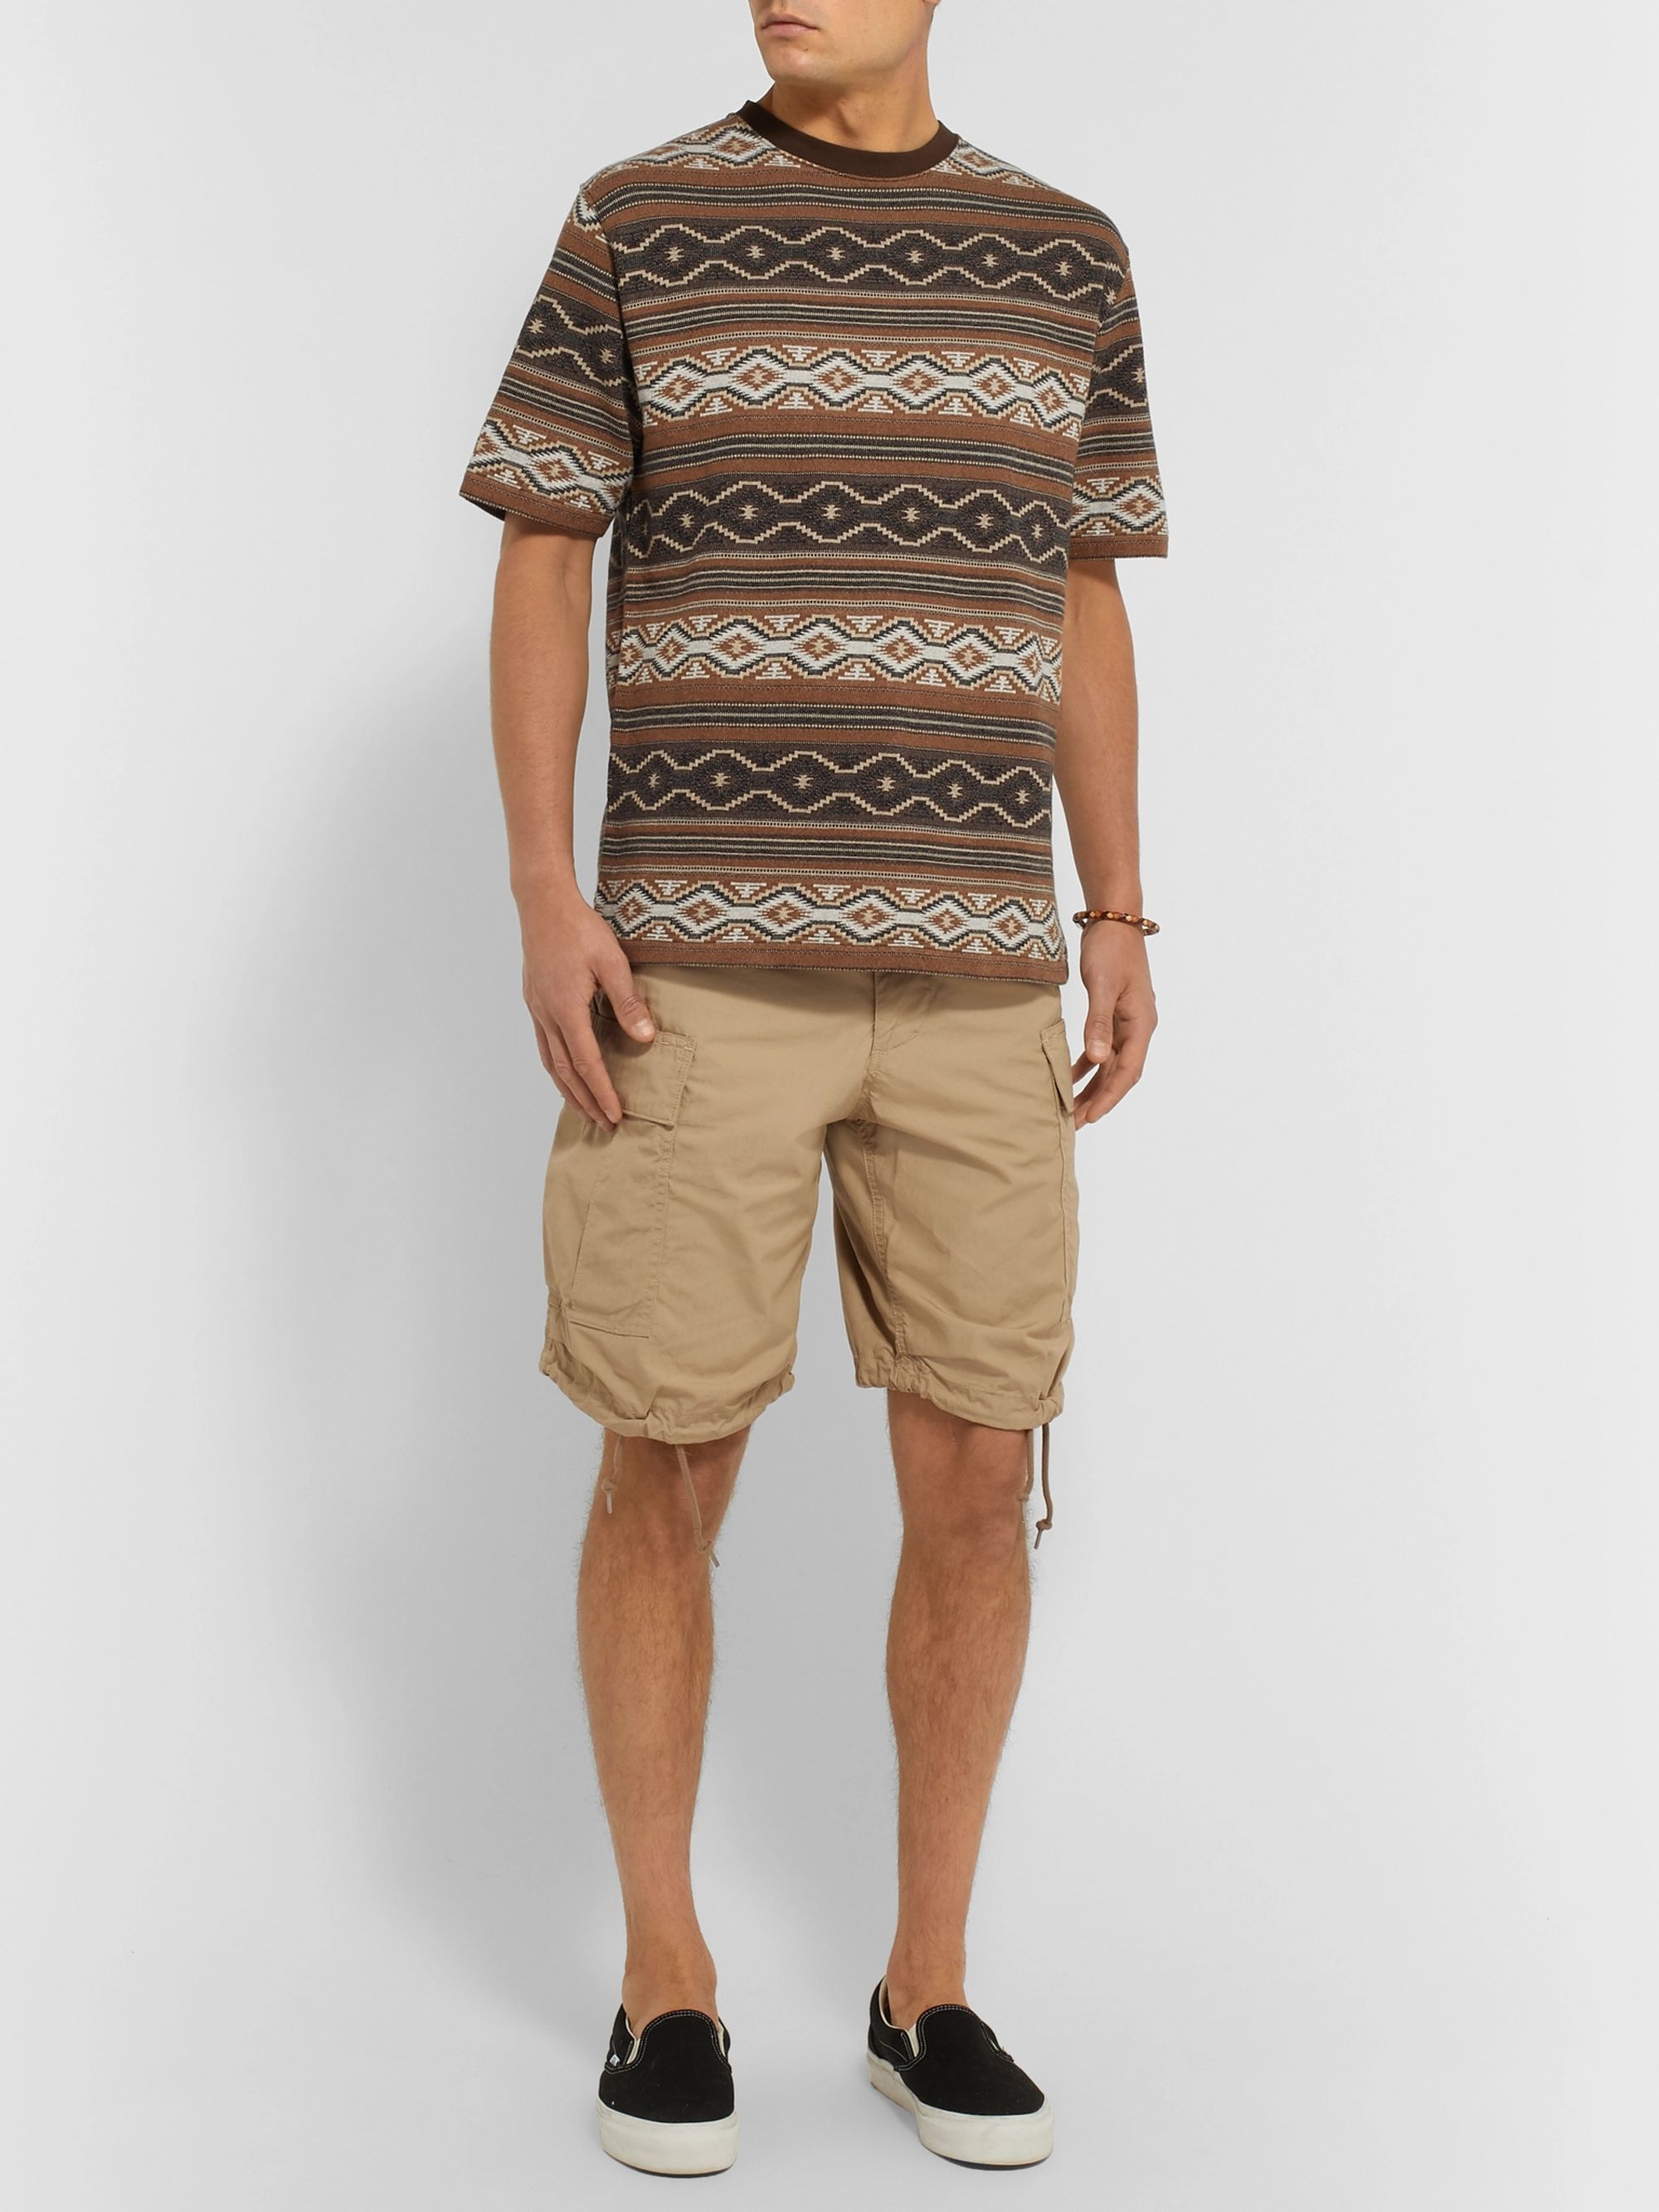 Beams Plus Cotton-Jacquard T-Shirt